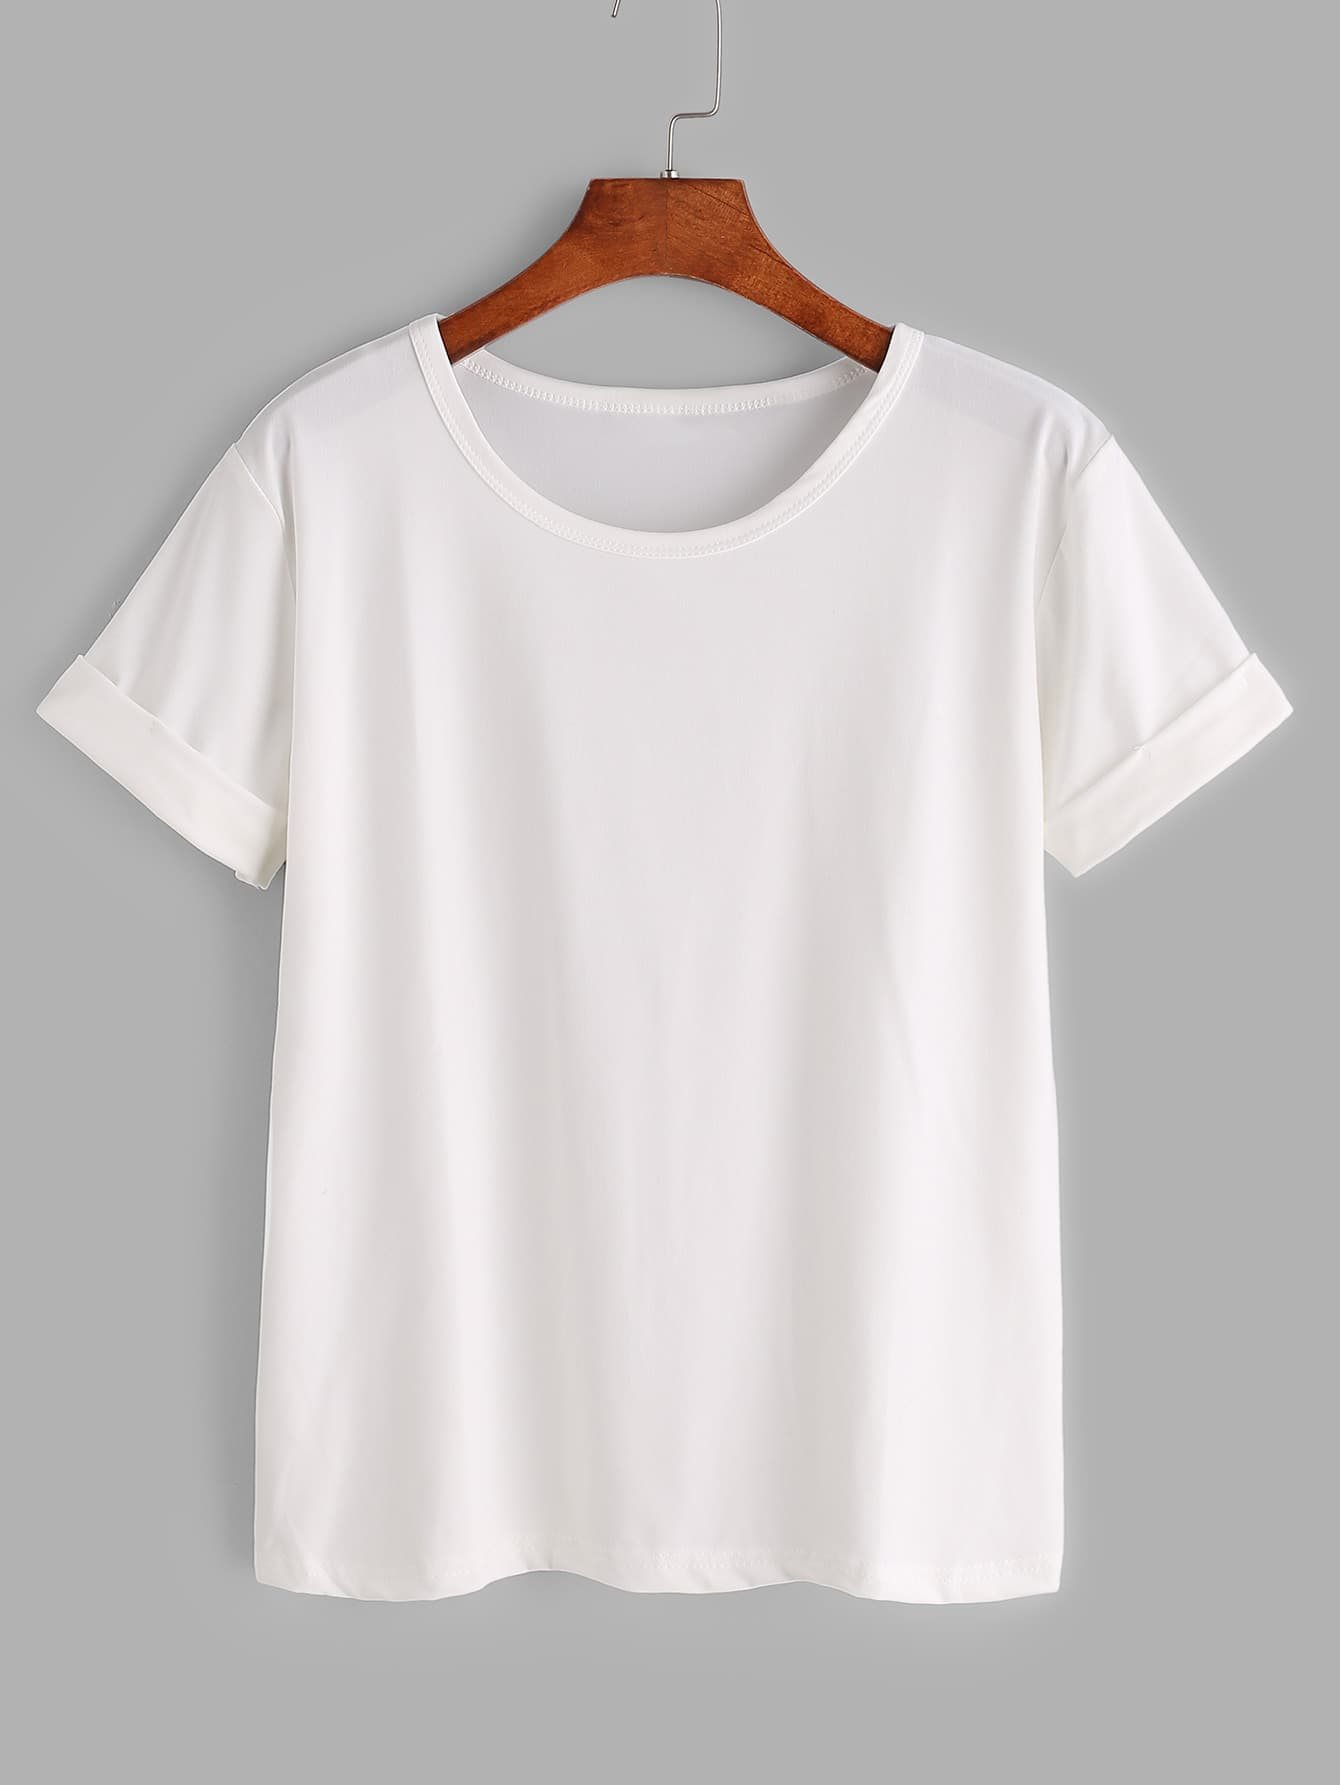 But there's just one problem: countless brands also know the magic of a white T-shirt and have offered up a take on it and each brand is marketing its own as the absolute best.